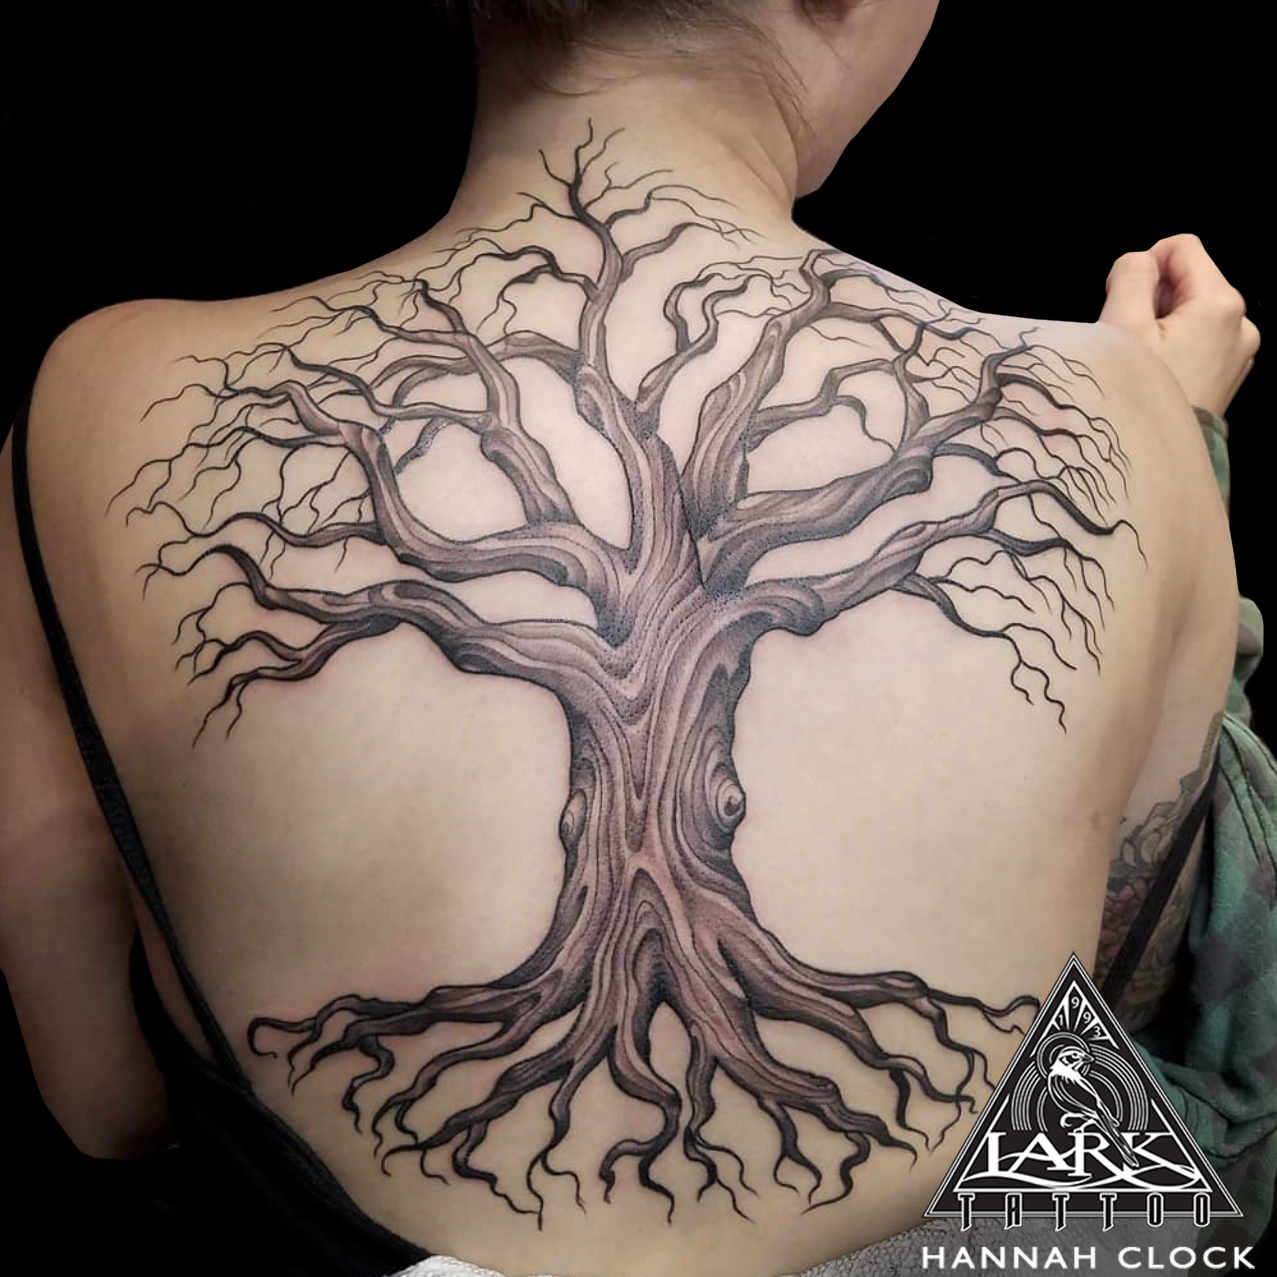 #tree #treetattoo #colortattoo #backtattoo #backpiece #backpiecetattoo #nature #naturetattoo #femaletattooer #femaletattooartist #femaleartist #tattoo #tattoos #tat #tats #tatts #tatted #tattedup #tattoist #tattooed #inked #inkedup #ink #tattoooftheday #amazingink #bodyart #tattooig #tattoosofinstagram #instatats #larktattoo #larktattoos #larktattoowestbury #westbury #longisland #NY #NewYork #usa #art #hannahclock #hannah #clock